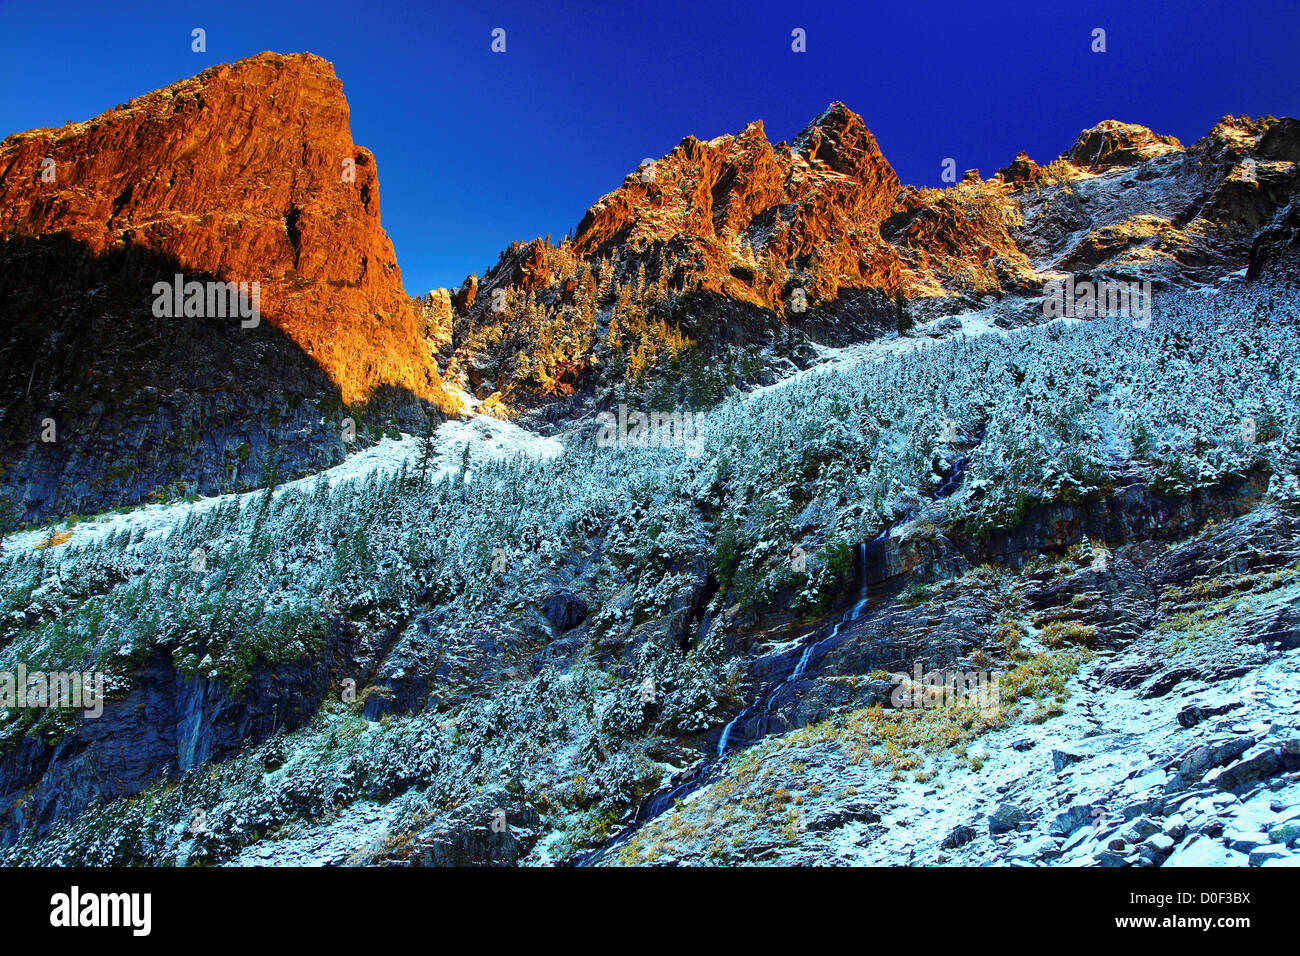 October snow on Morning Star Peak in Wirtz Basin, from Headlee Pass Trail. - Stock Image